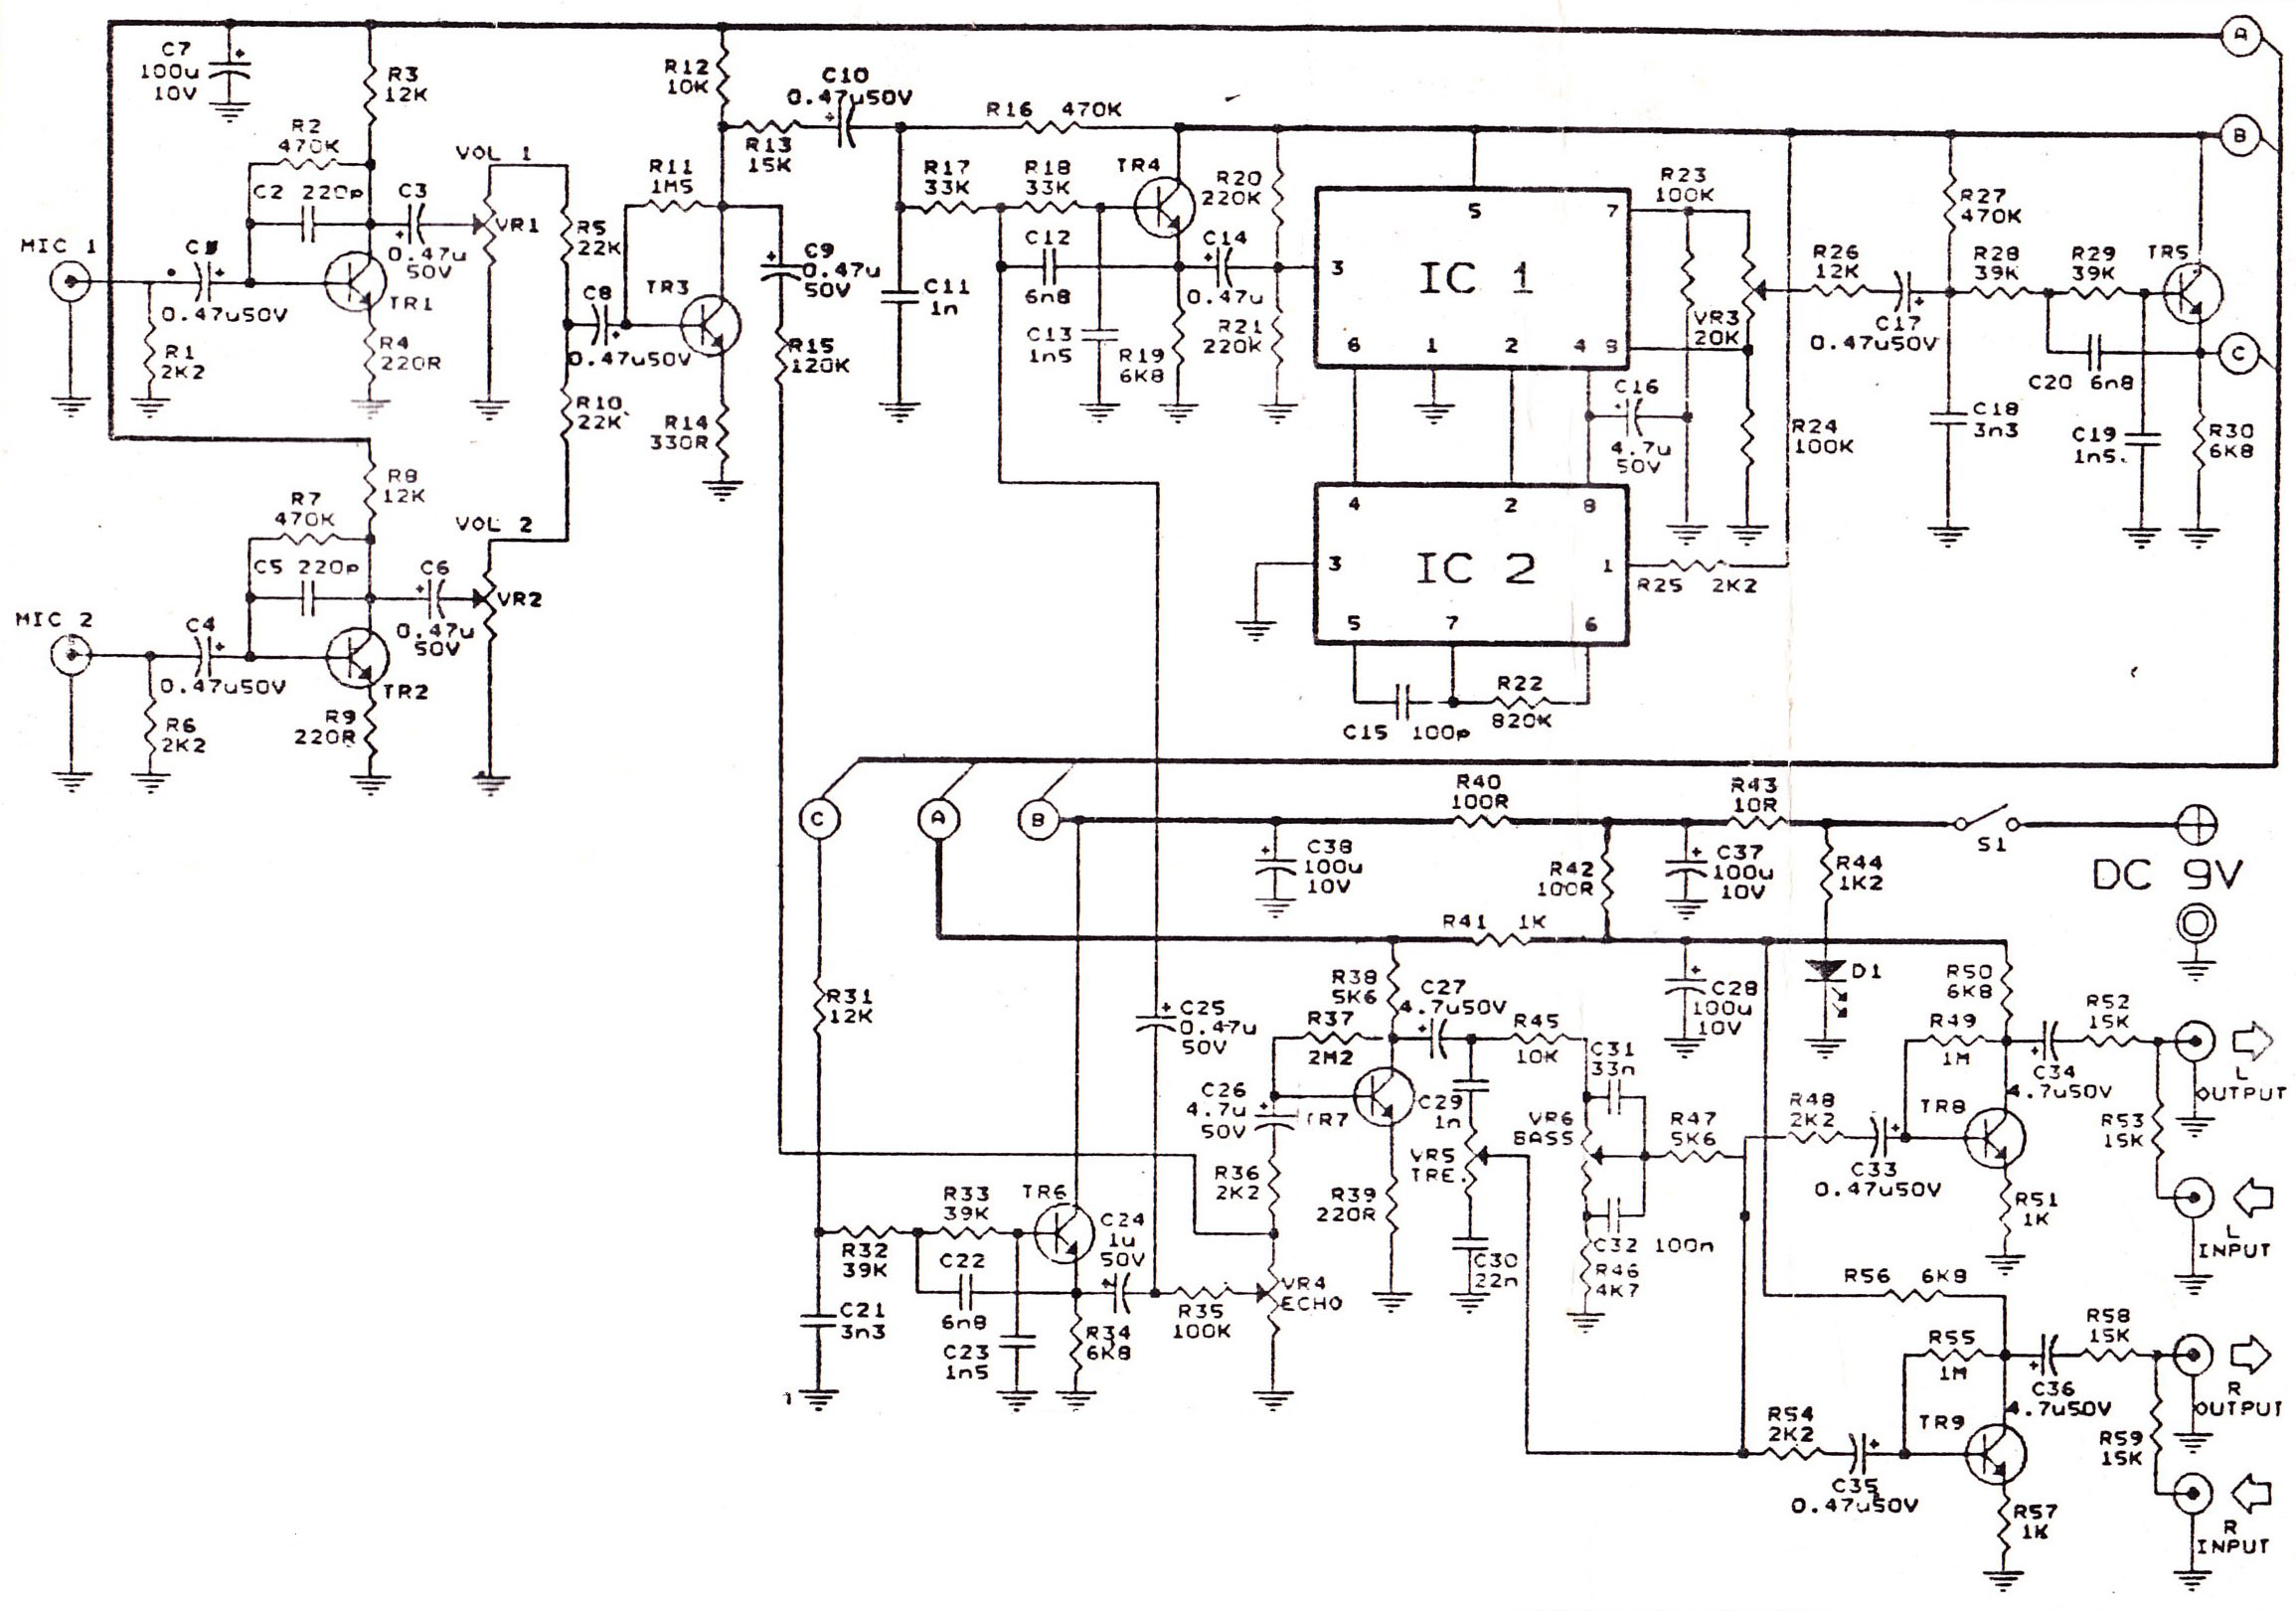 echo repeter and preamp mic schematic - electronic circuit diagram and layout